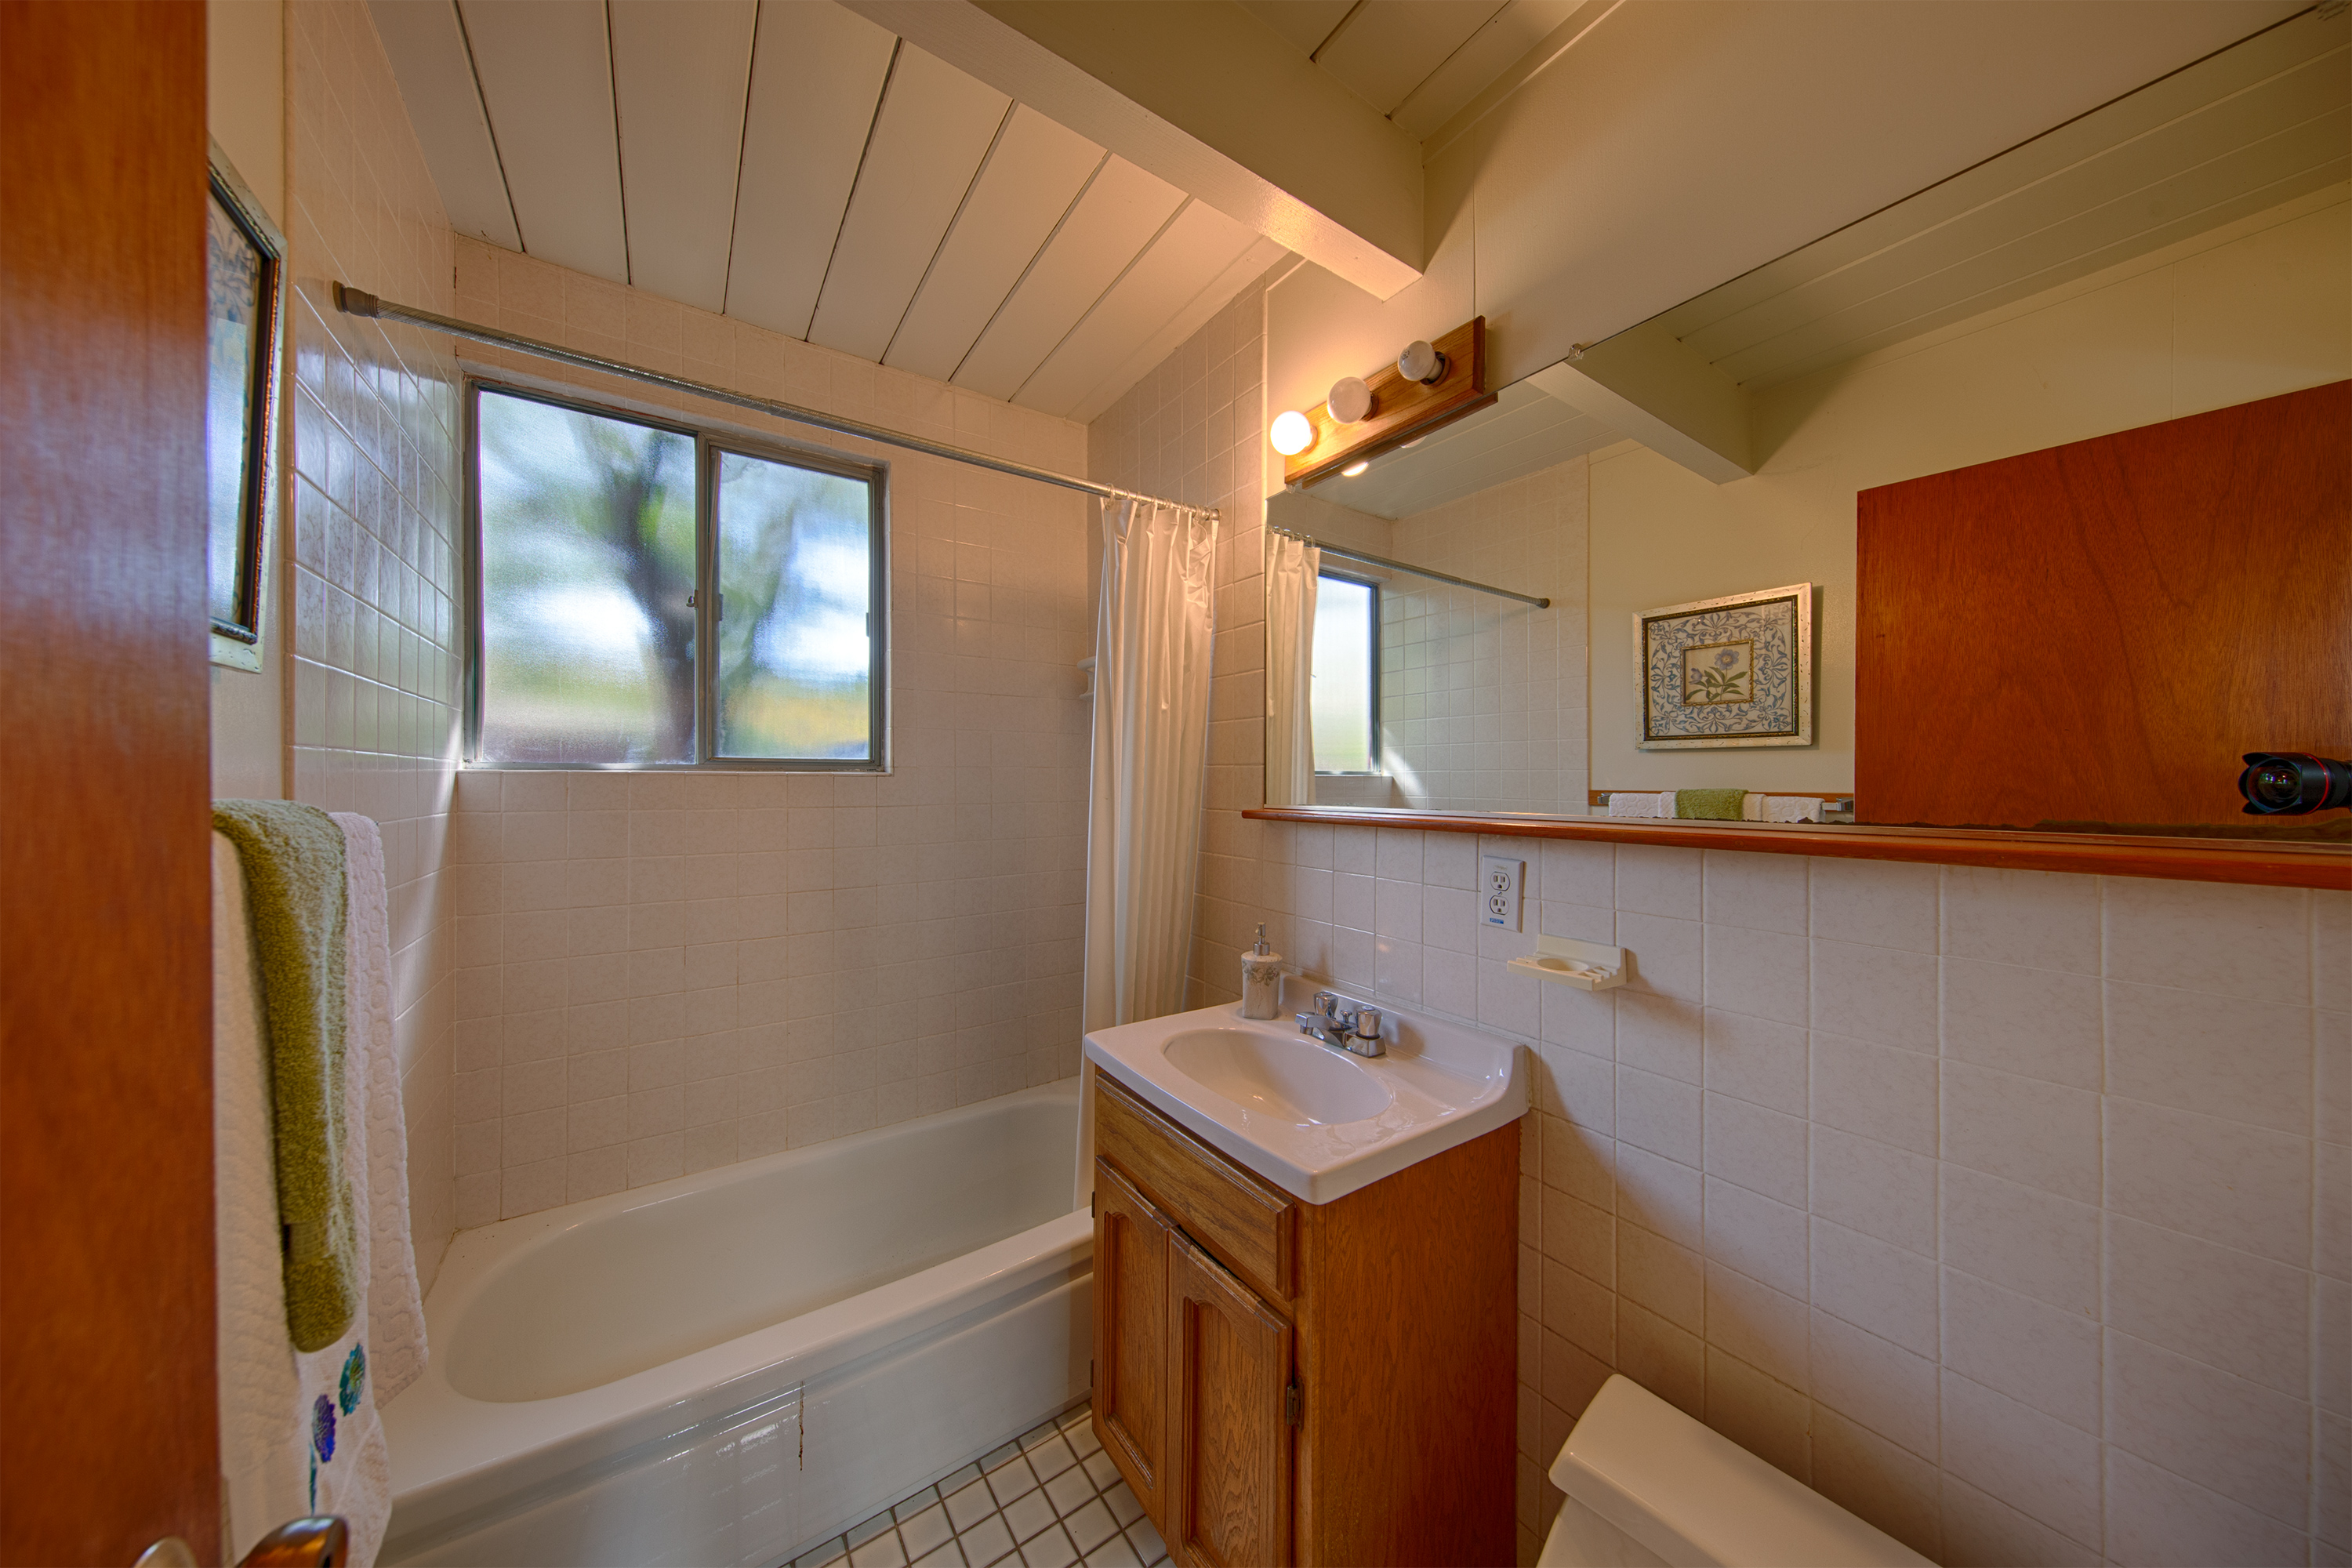 3464 Janice Way, Palo Alto 94303 - Bathroom 2 (A)